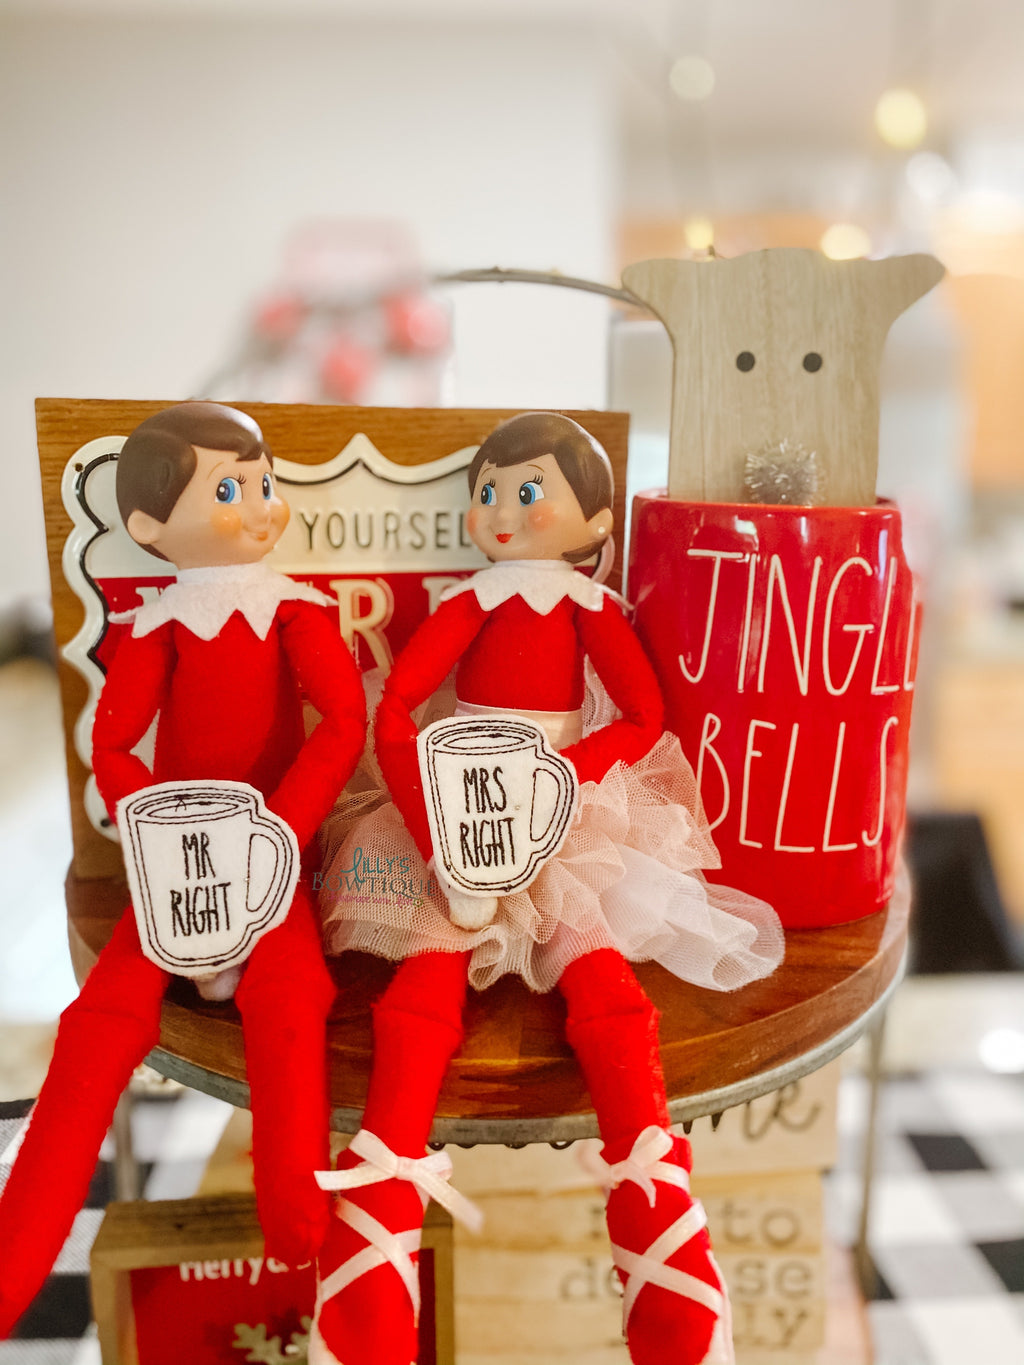 Elf Embroidered Mr. and Mrs. Right Mugs